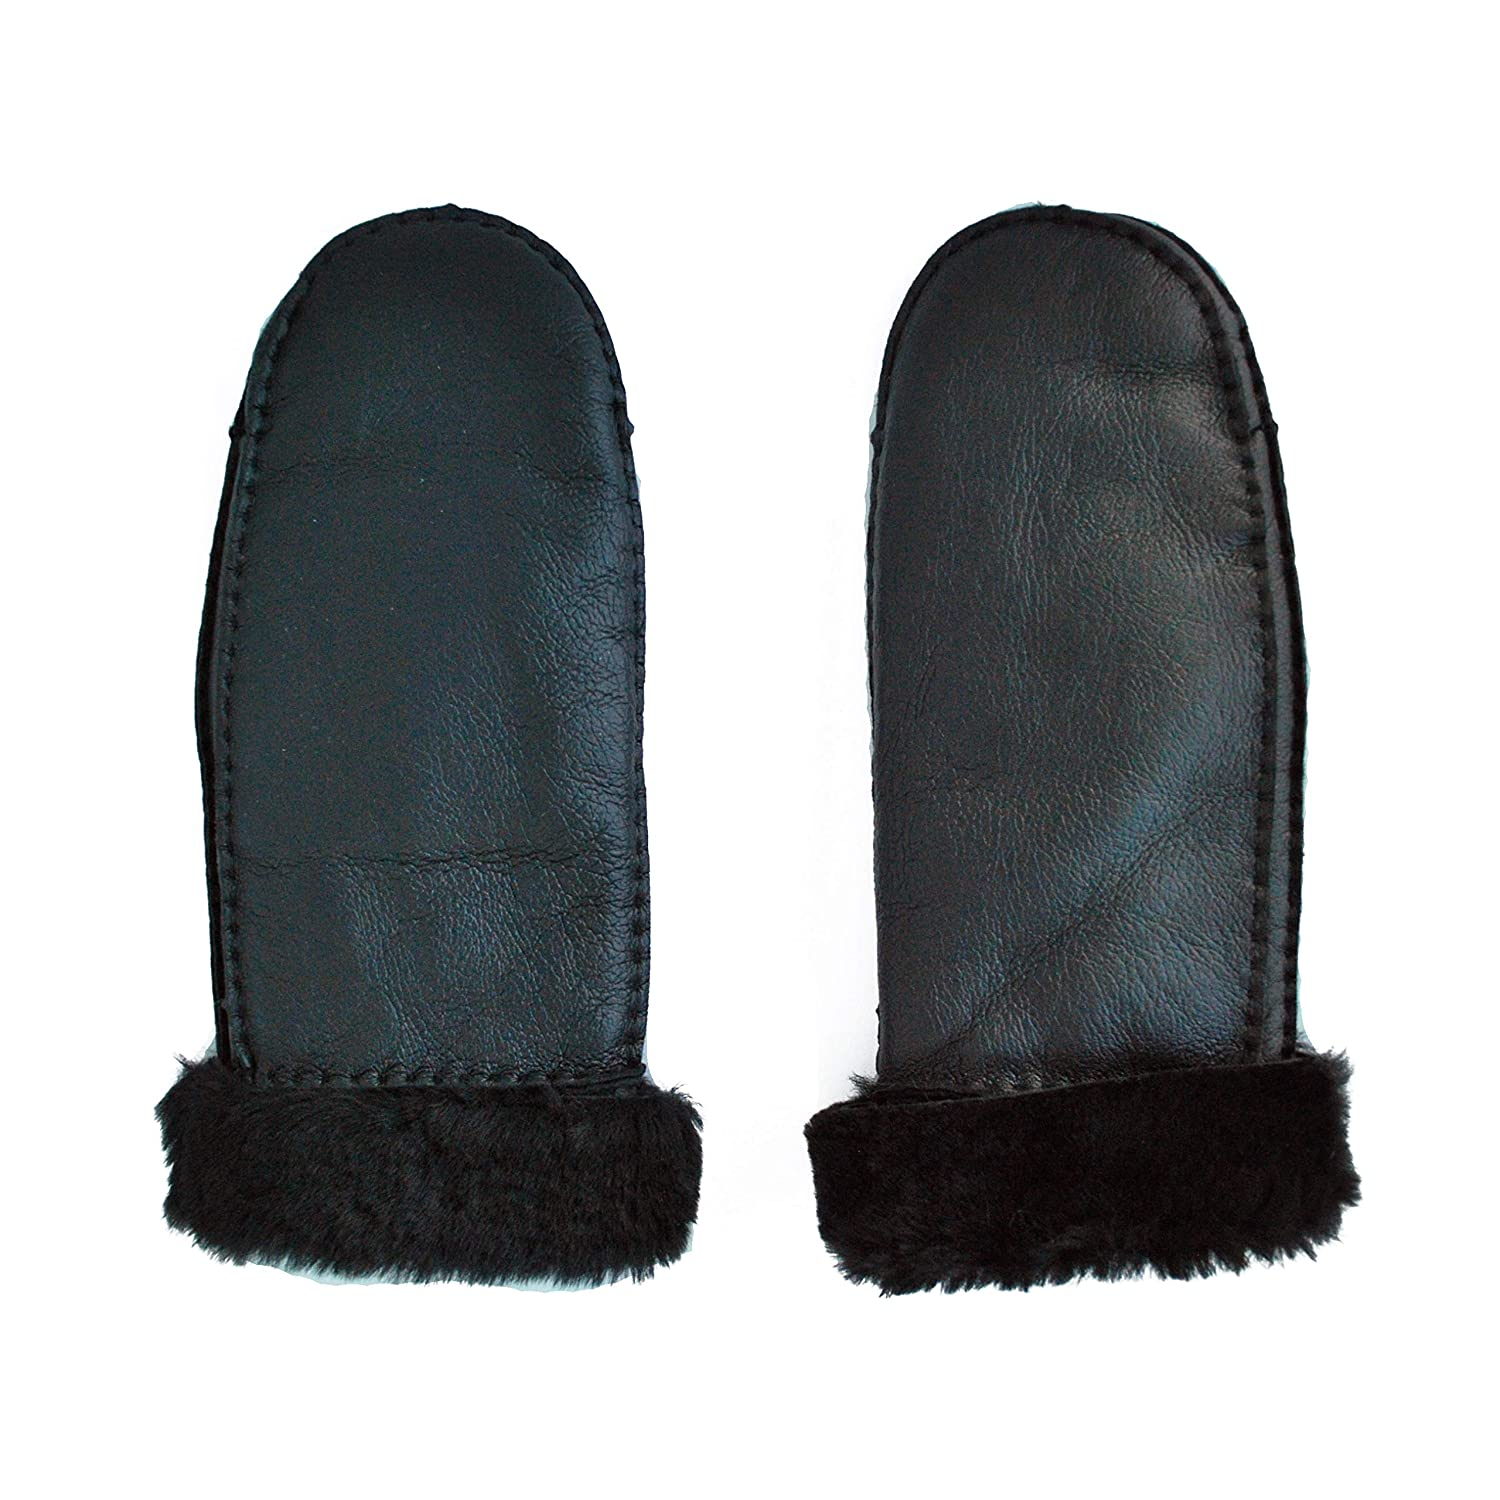 Women's Hand Sewn Sheep Shearling Fur Mitten #81 (Matt Navy)